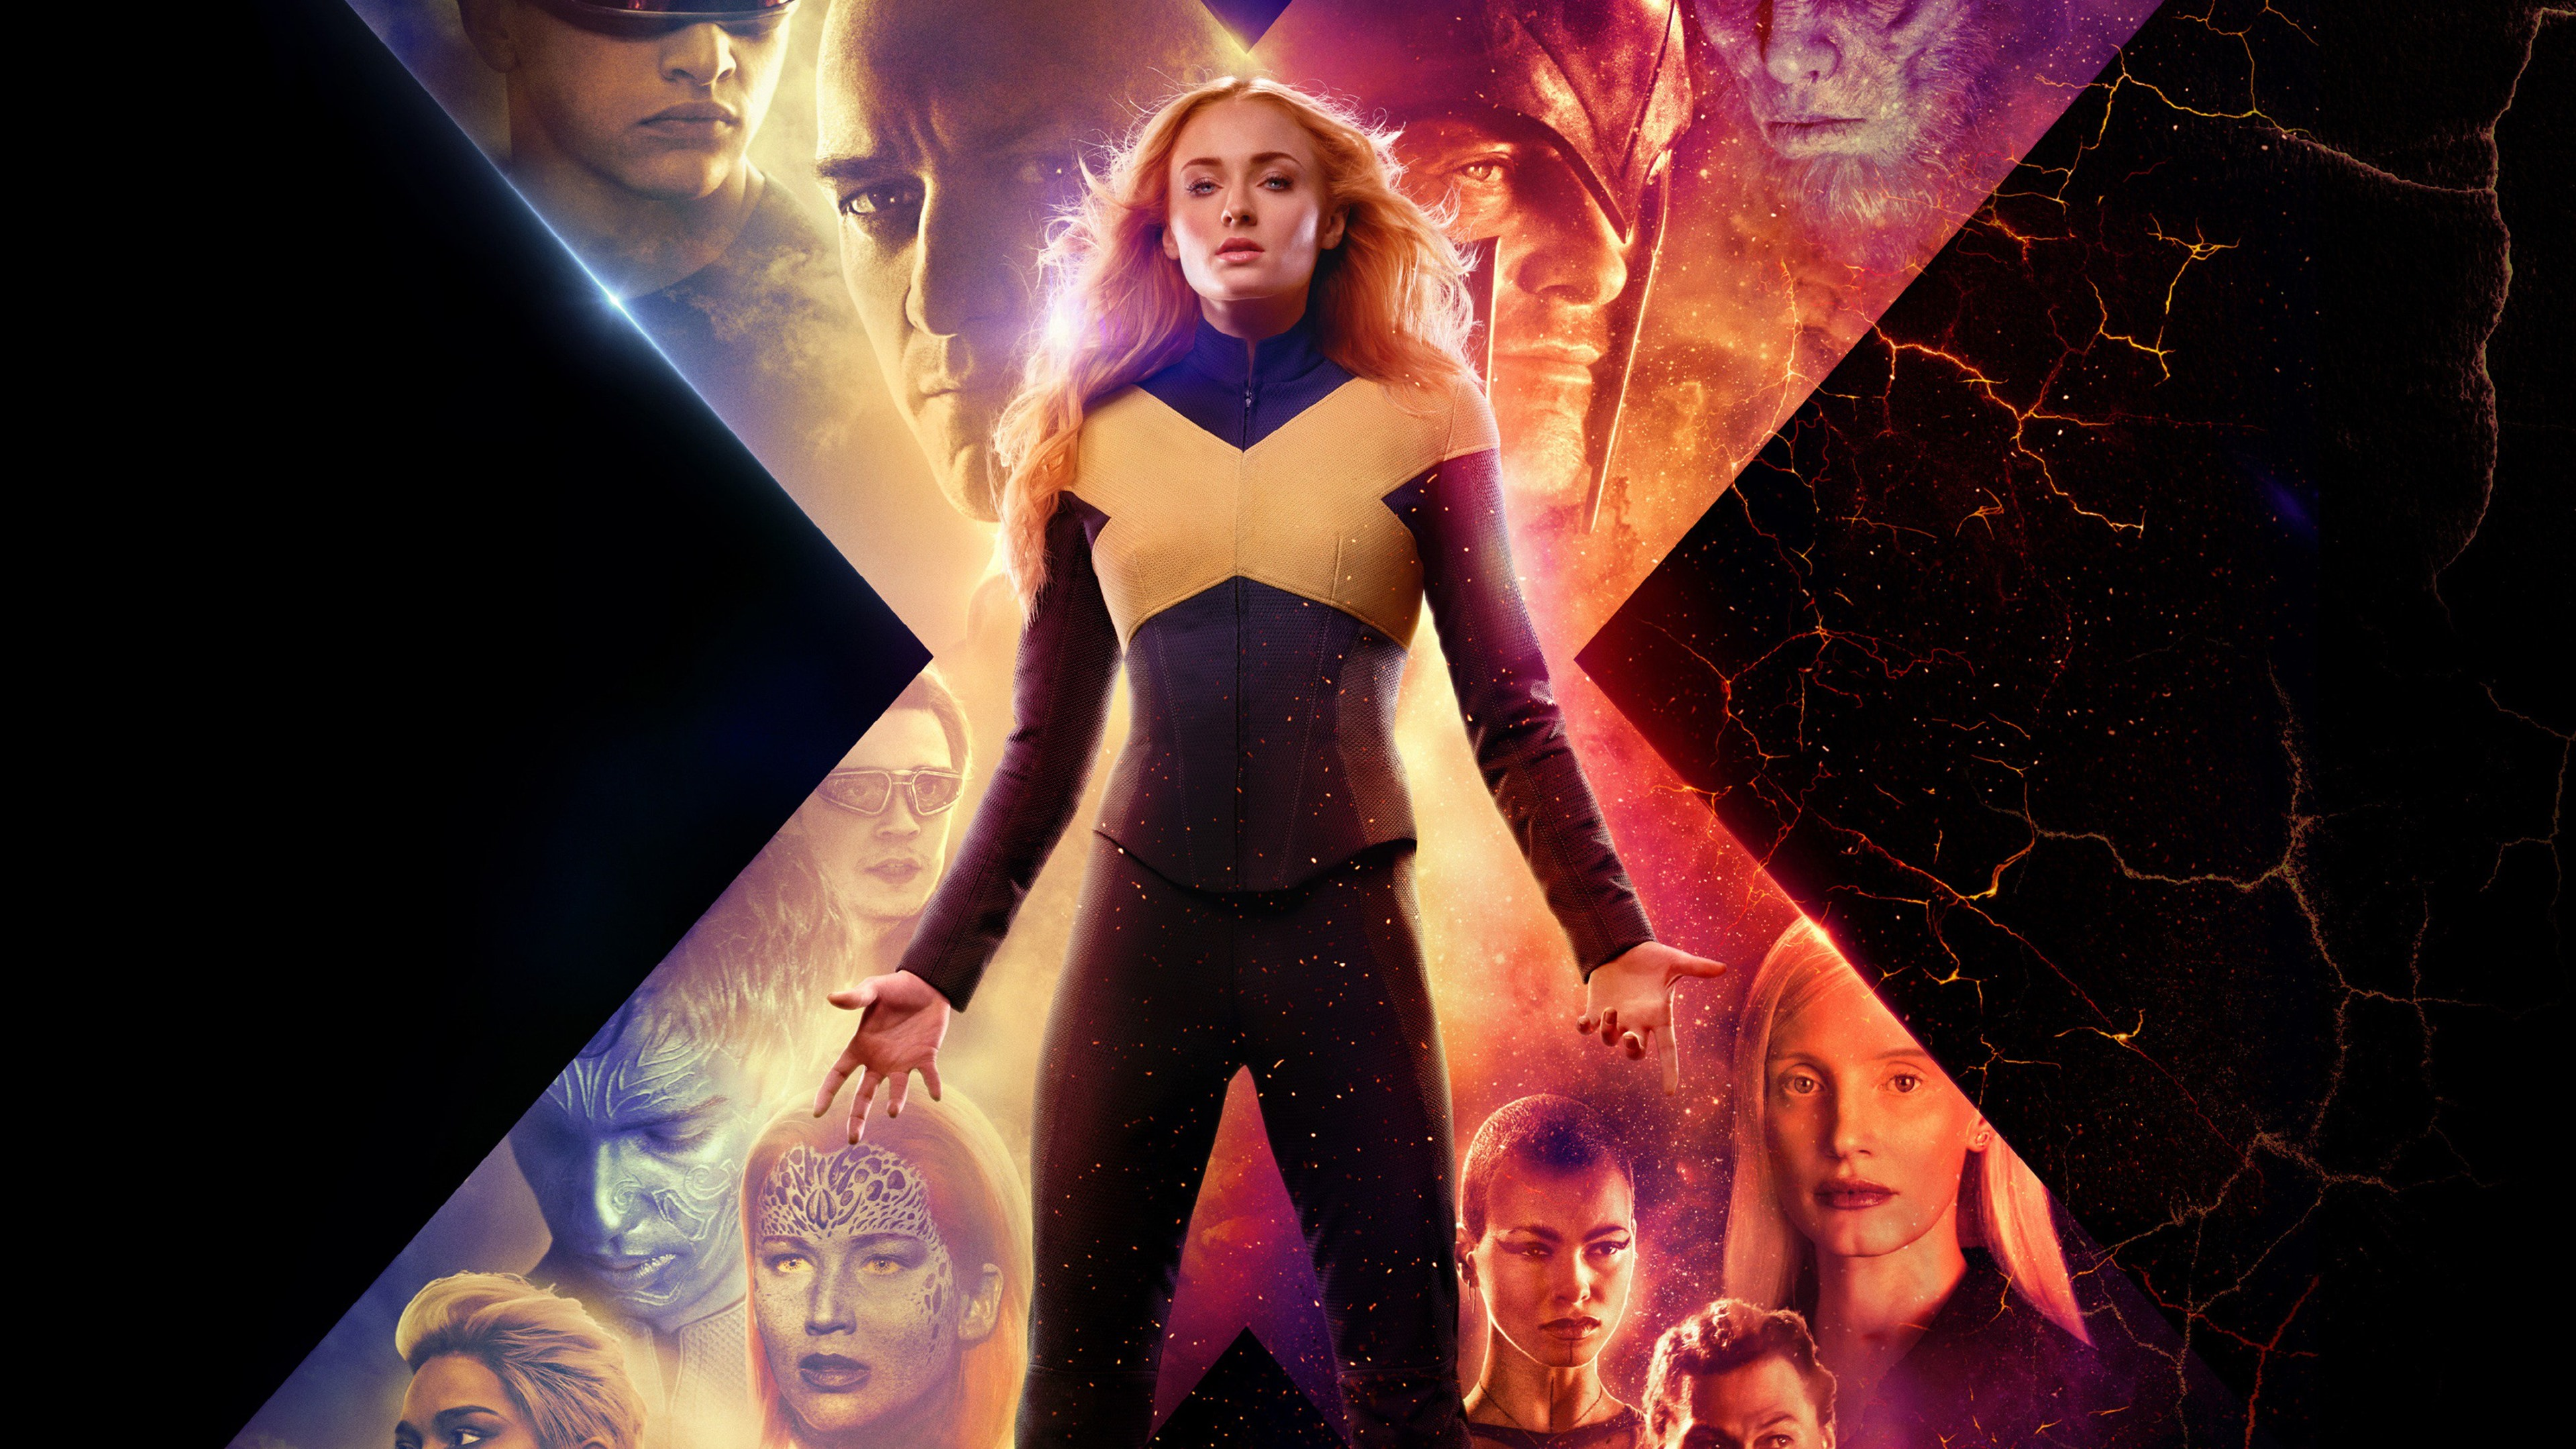 Wallpaper X Men Dark Phoenix 2019 Movie 3840x2160 Uhd 4k Picture Image